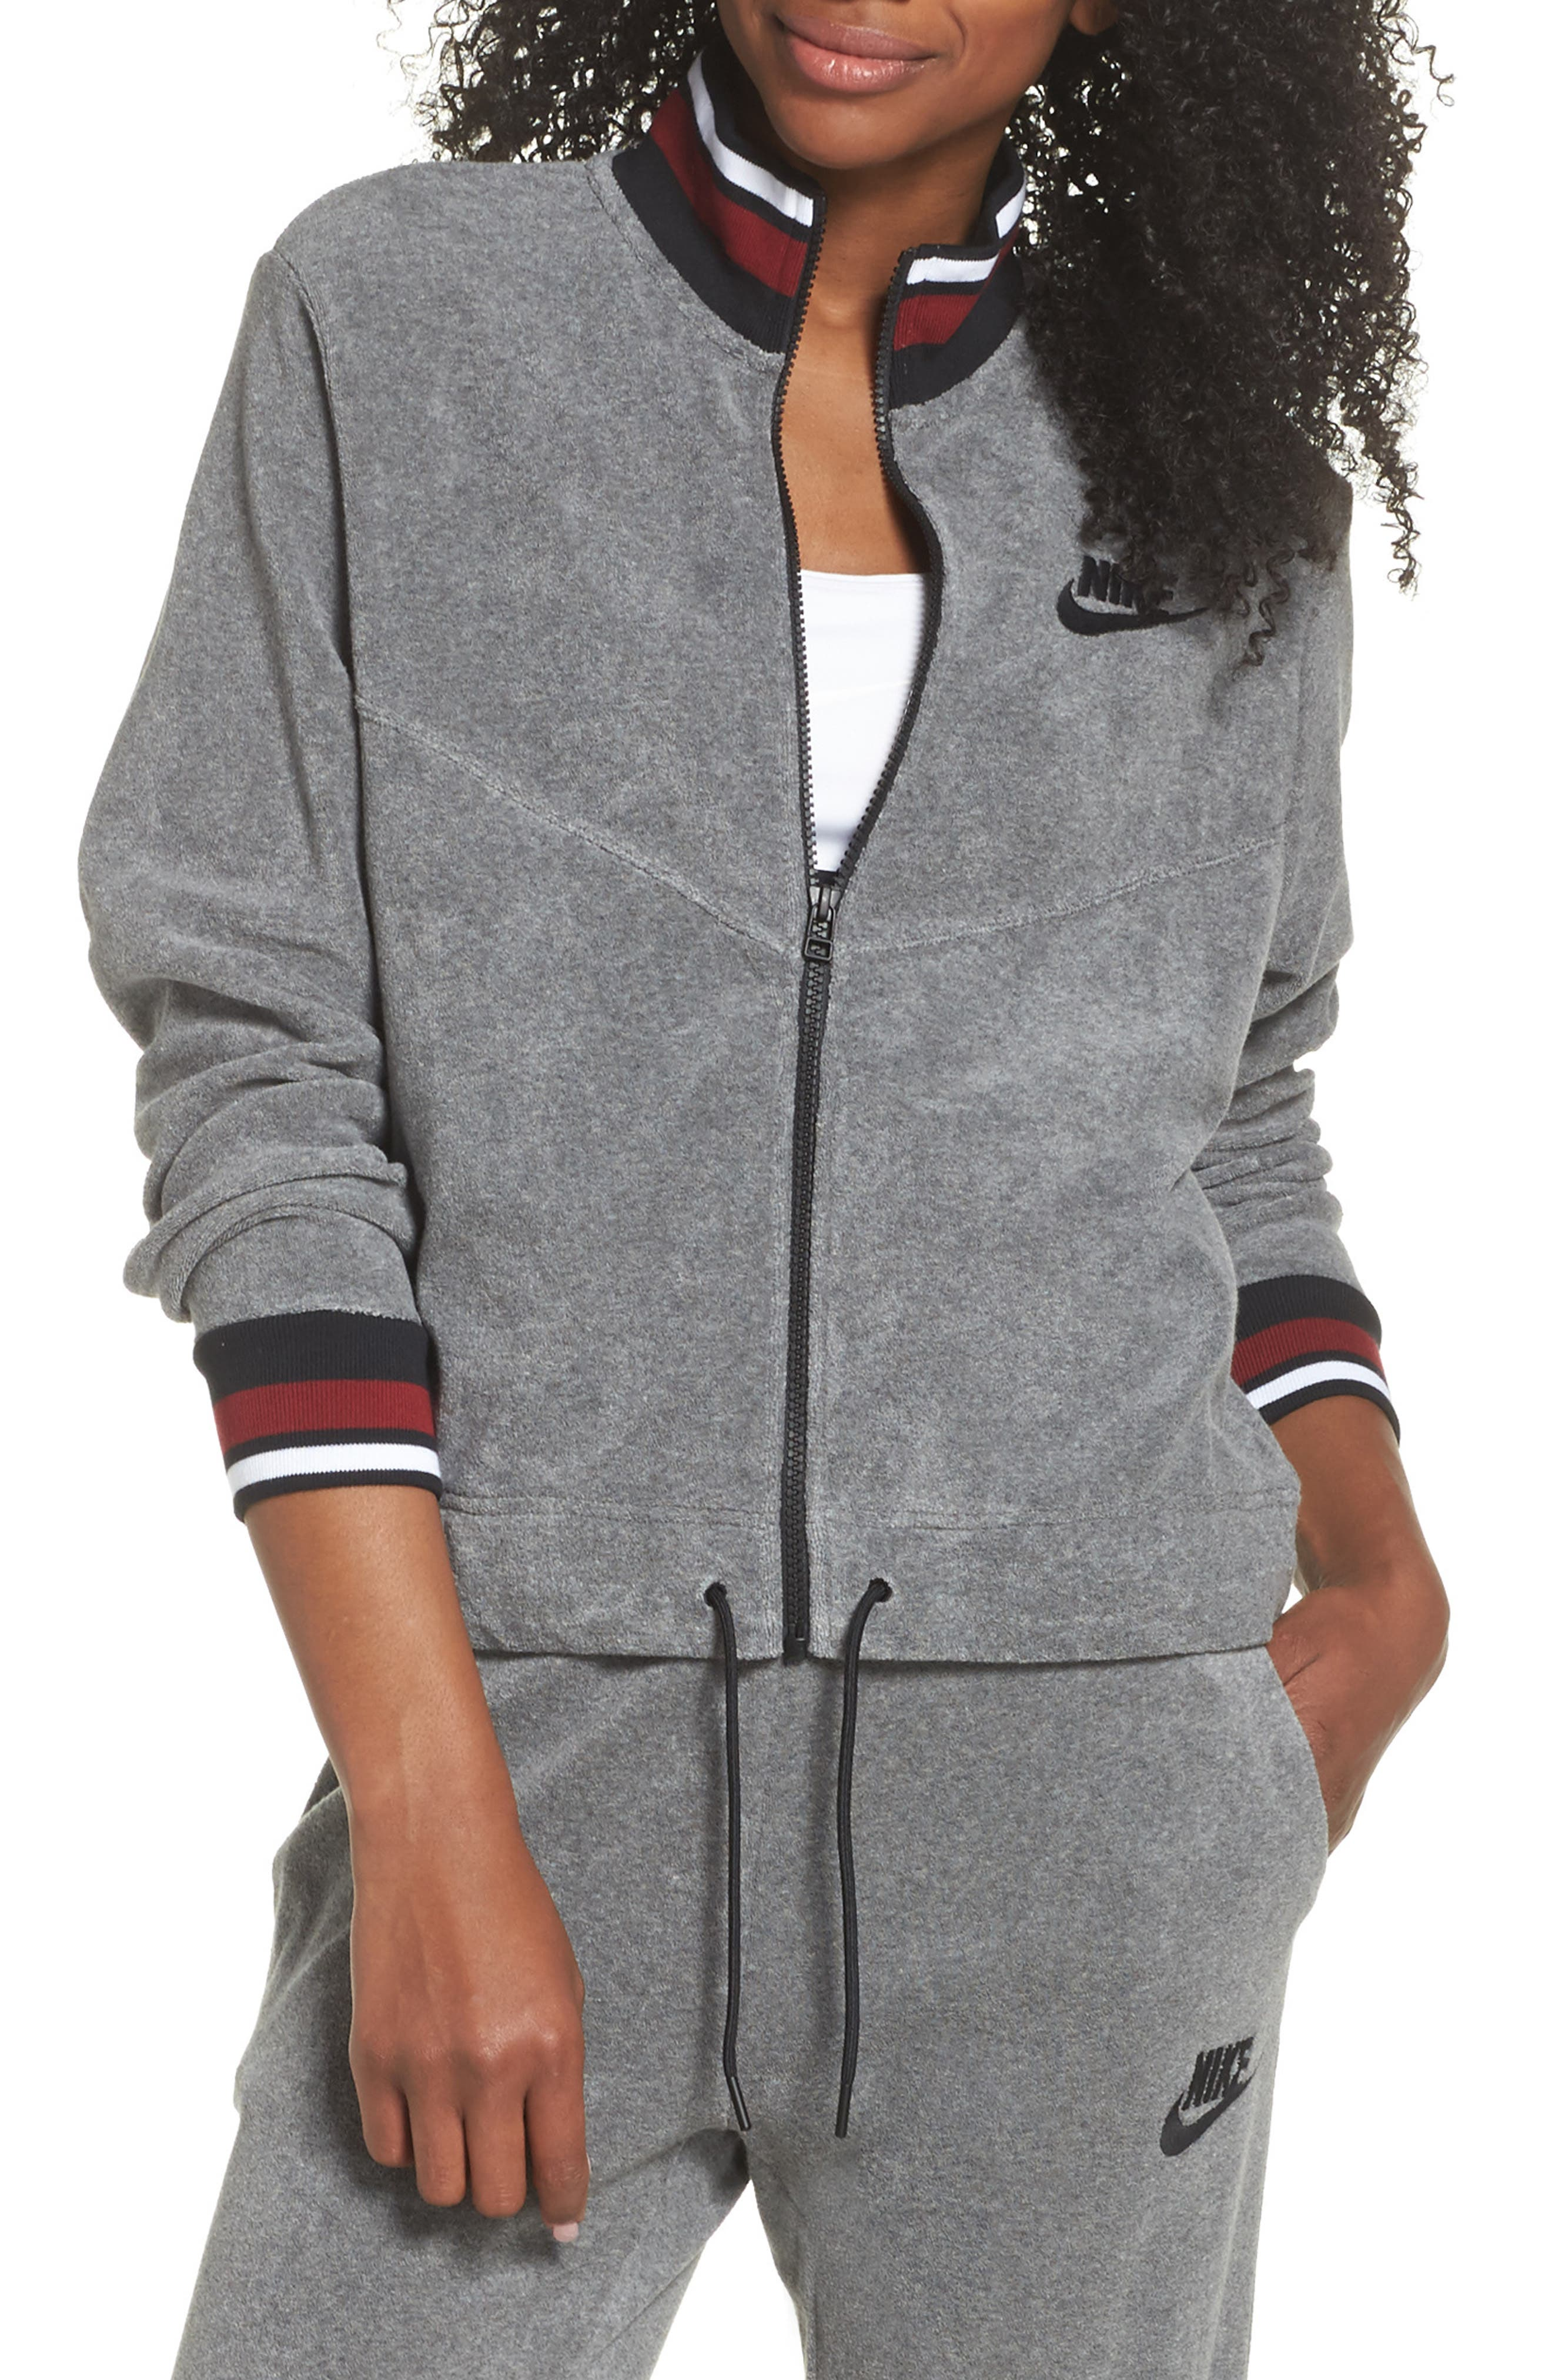 Sportswear French Terry Jacket,                         Main,                         color, Heather/ Anthracite/ Team Red